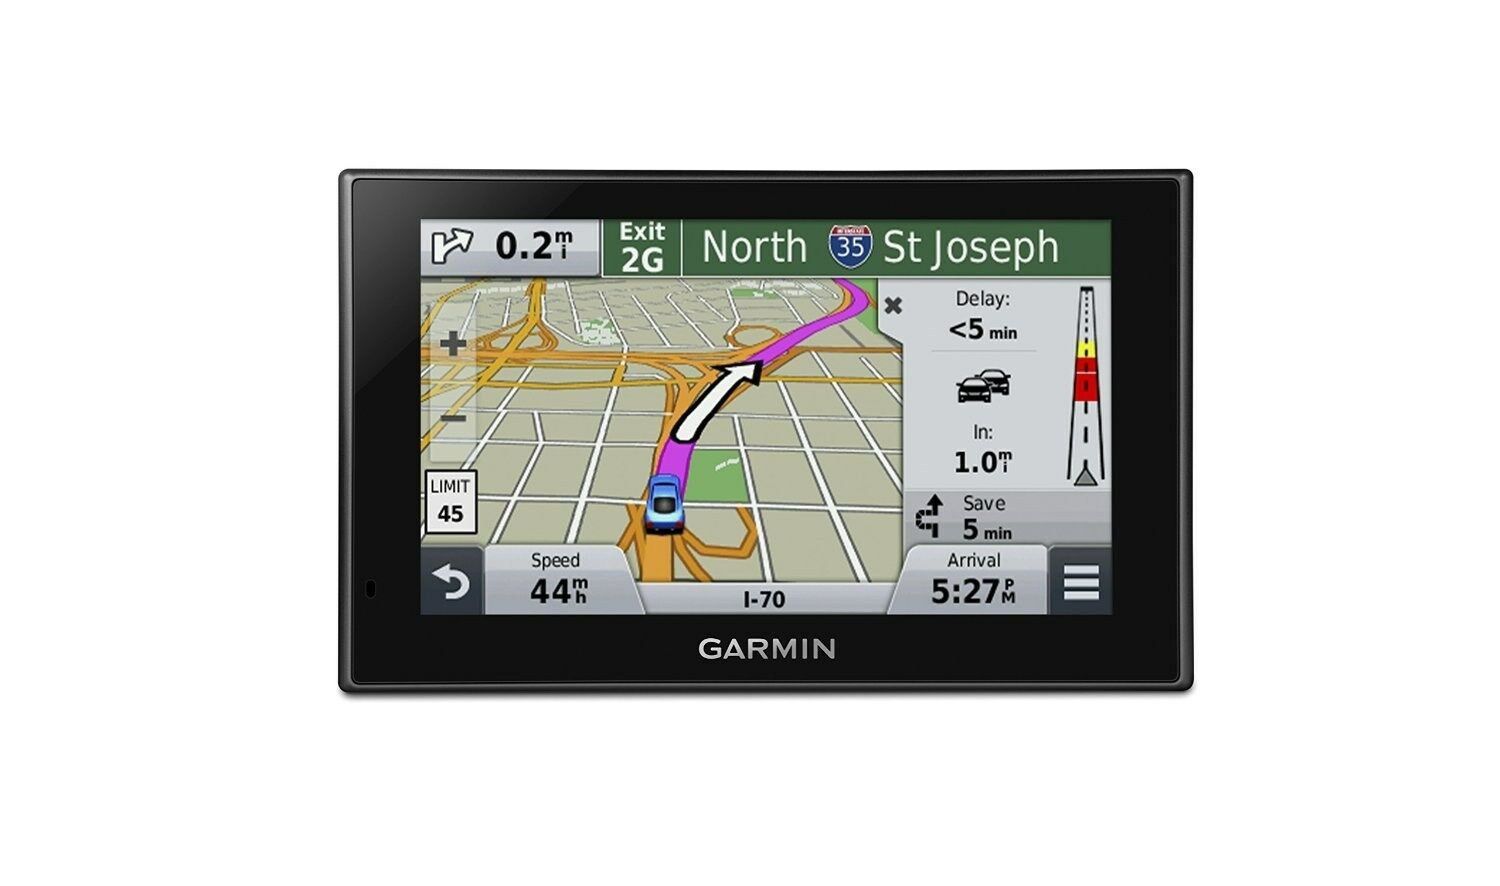 $_57 Garmin Nuvi With Lifetime Maps And Traffic on garmin with voice activation, 7 garmin nuvi maps, nuvi gps maps, garmin gps lifetime maps, garmin lifetime map upgrade, navigation systems with lifetime maps, garmin nuvi with bluetooth, 49 states garmin maps, garmin lifetime updater, garmin 265wt with lifetime maps, garmin nuvi 50 lifetime maps, garmin nuvi lifetime maps that has, garmin nuvi 50lm lifetime maps, discount garmin lifetime maps, garmin 7 gps with bluetooth,